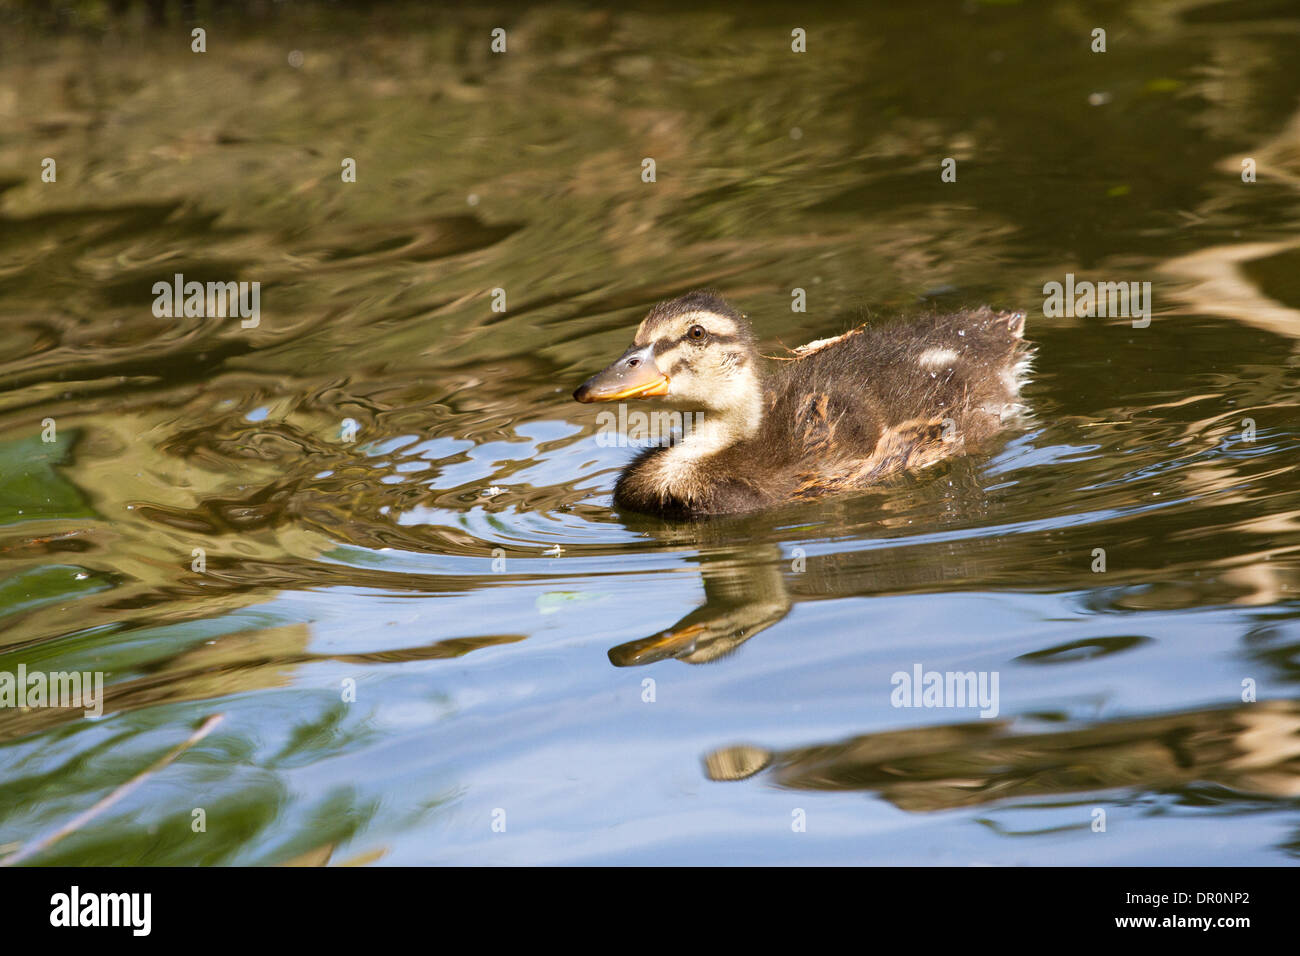 Young mallard chick - Anas platyrhynchos, swimming on a river, Thames, England, UK - Stock Image